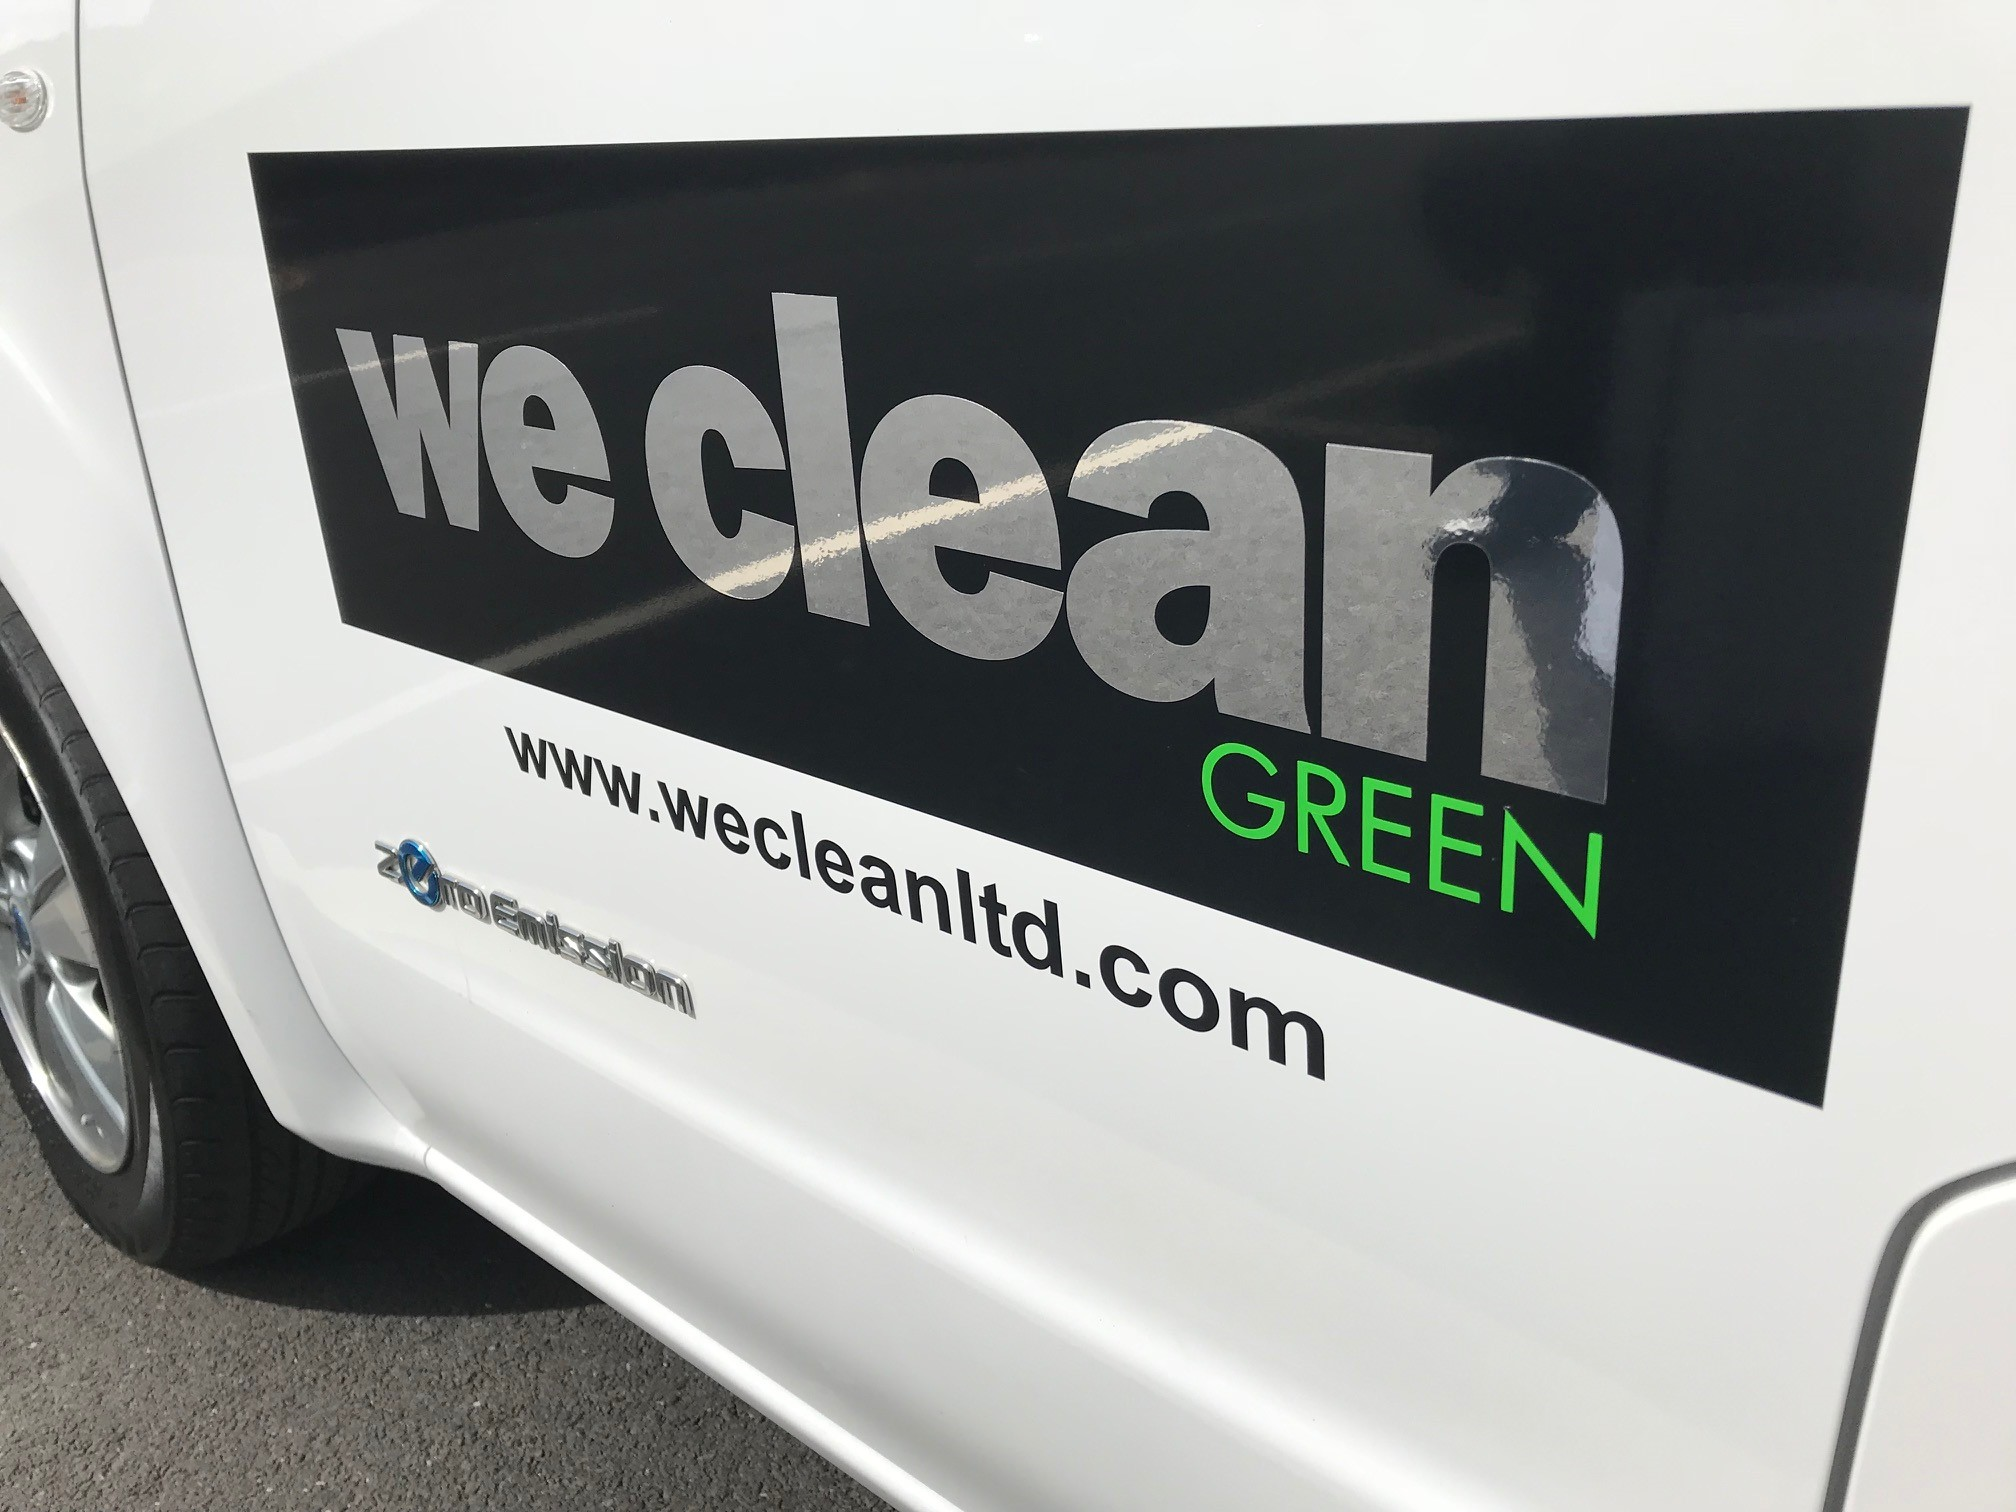 11 Cleaning Green